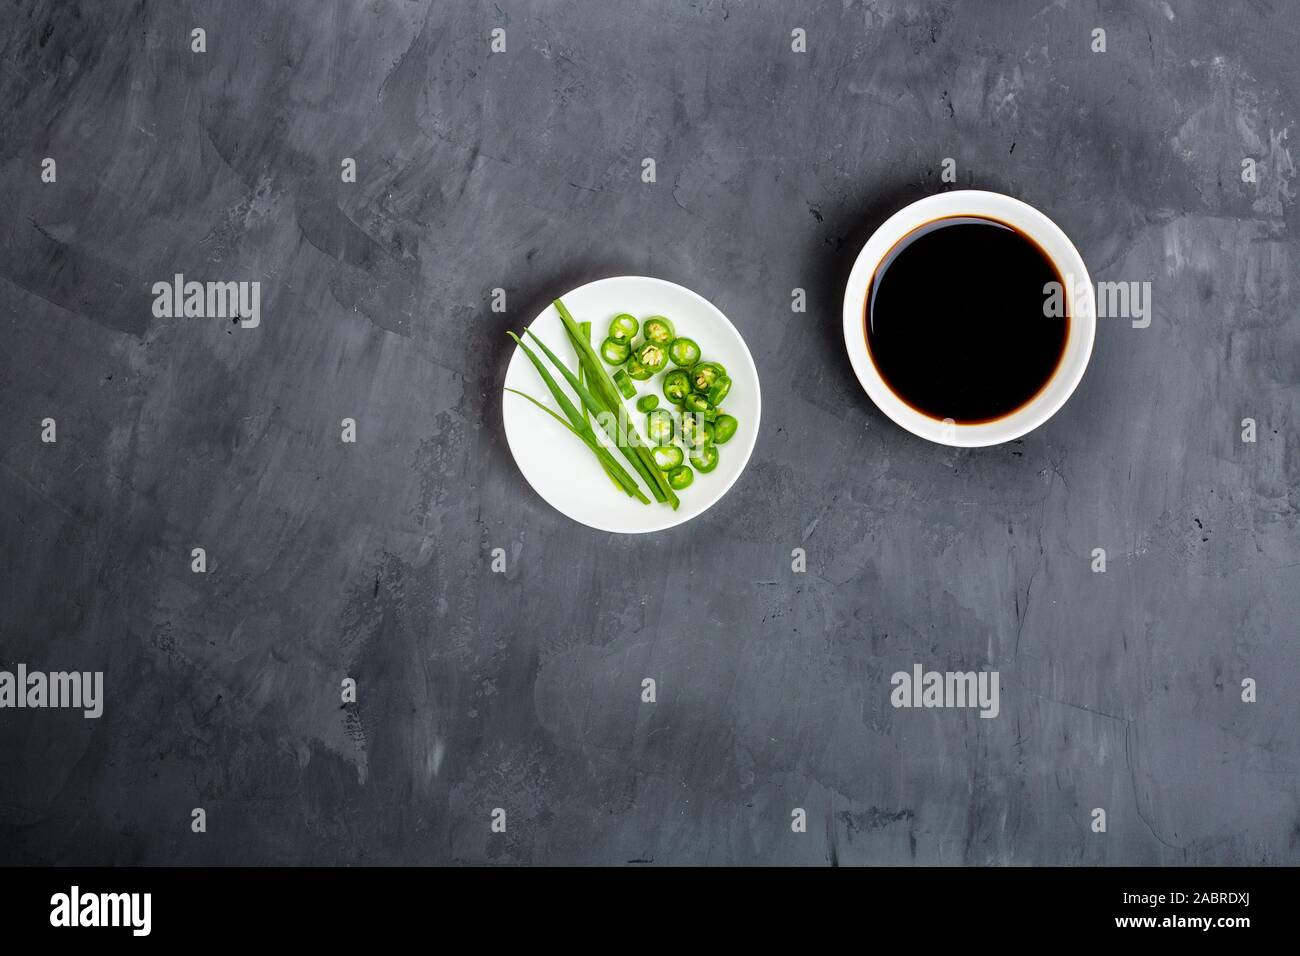 Soy sauce, onion and green pepper on gray concrete background. Flat lay, Top view, mock up, overhead, template Stock Photo